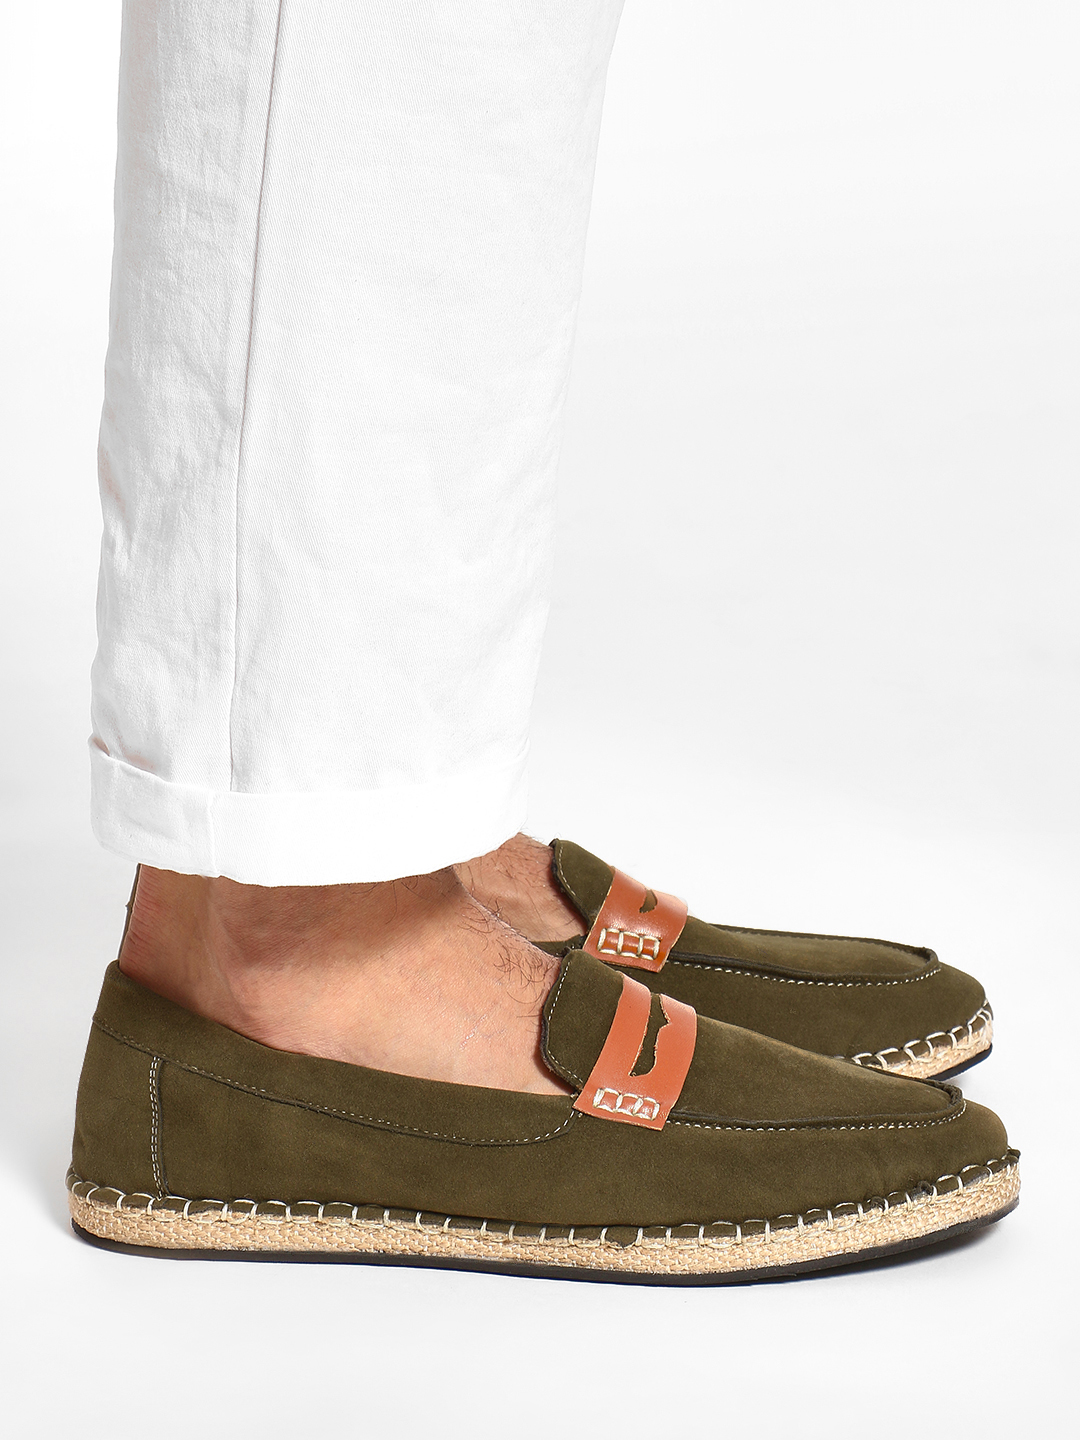 Bolt Of The Good Stuff Green Suede Penny Loafer Espadrilles 1